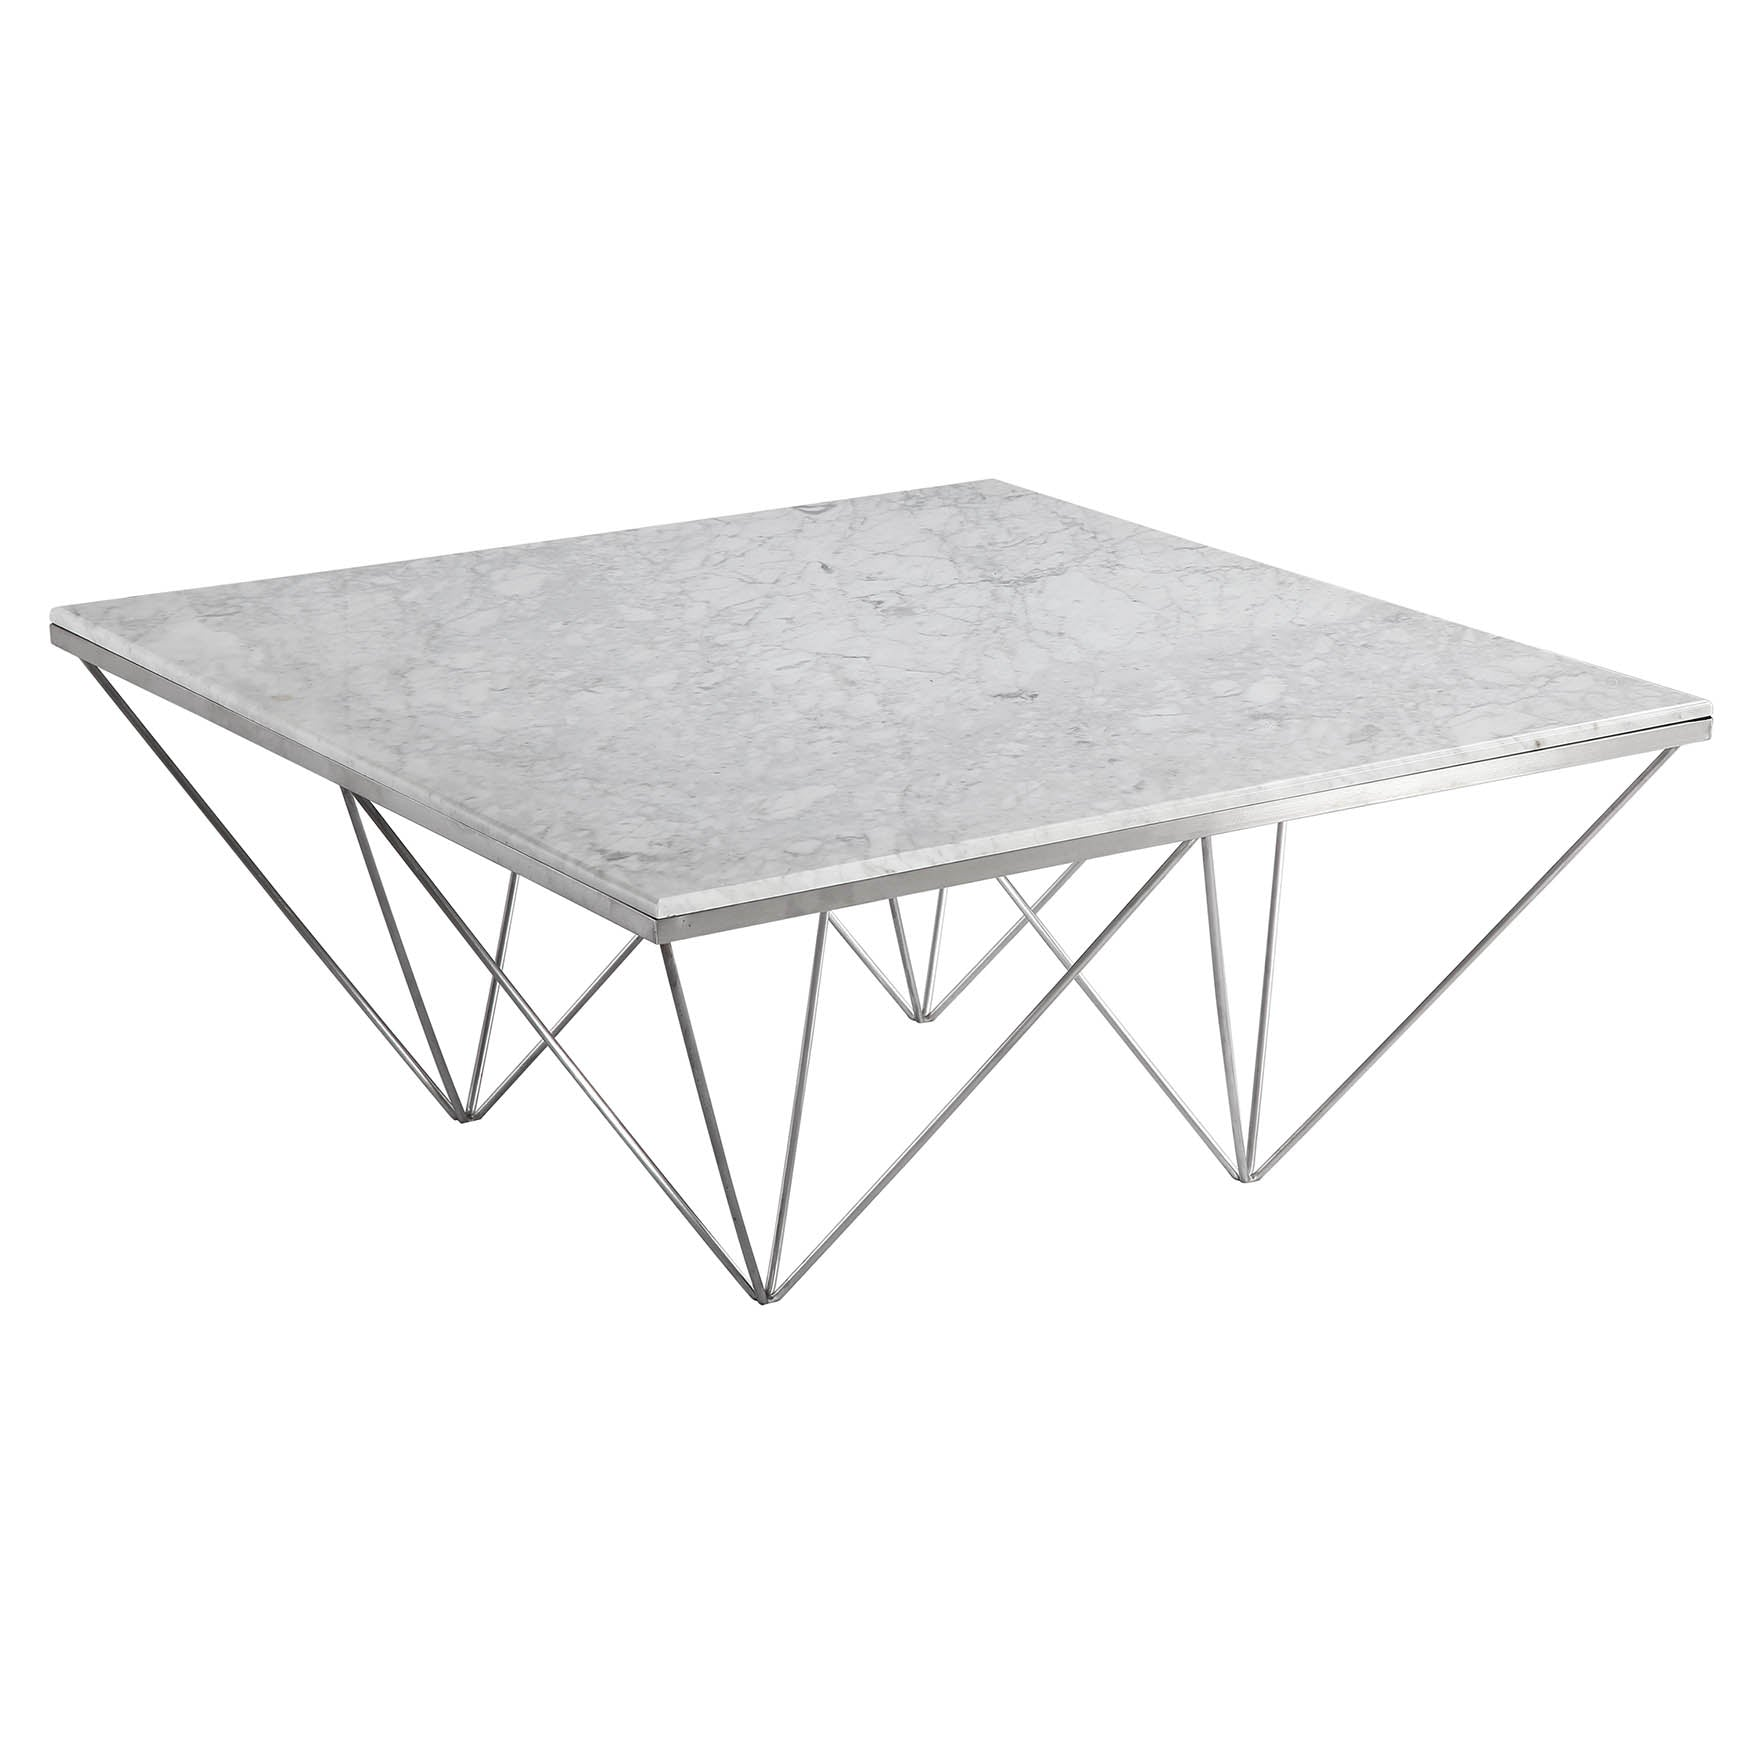 Natural Marble & Stainless Steel Table BP8810- B -  طاول من الرخام الطبيعي والفولاذ المقاوم للصدأ - Shop Online Furniture and Home Decor Store in Dubai, UAE at ebarza